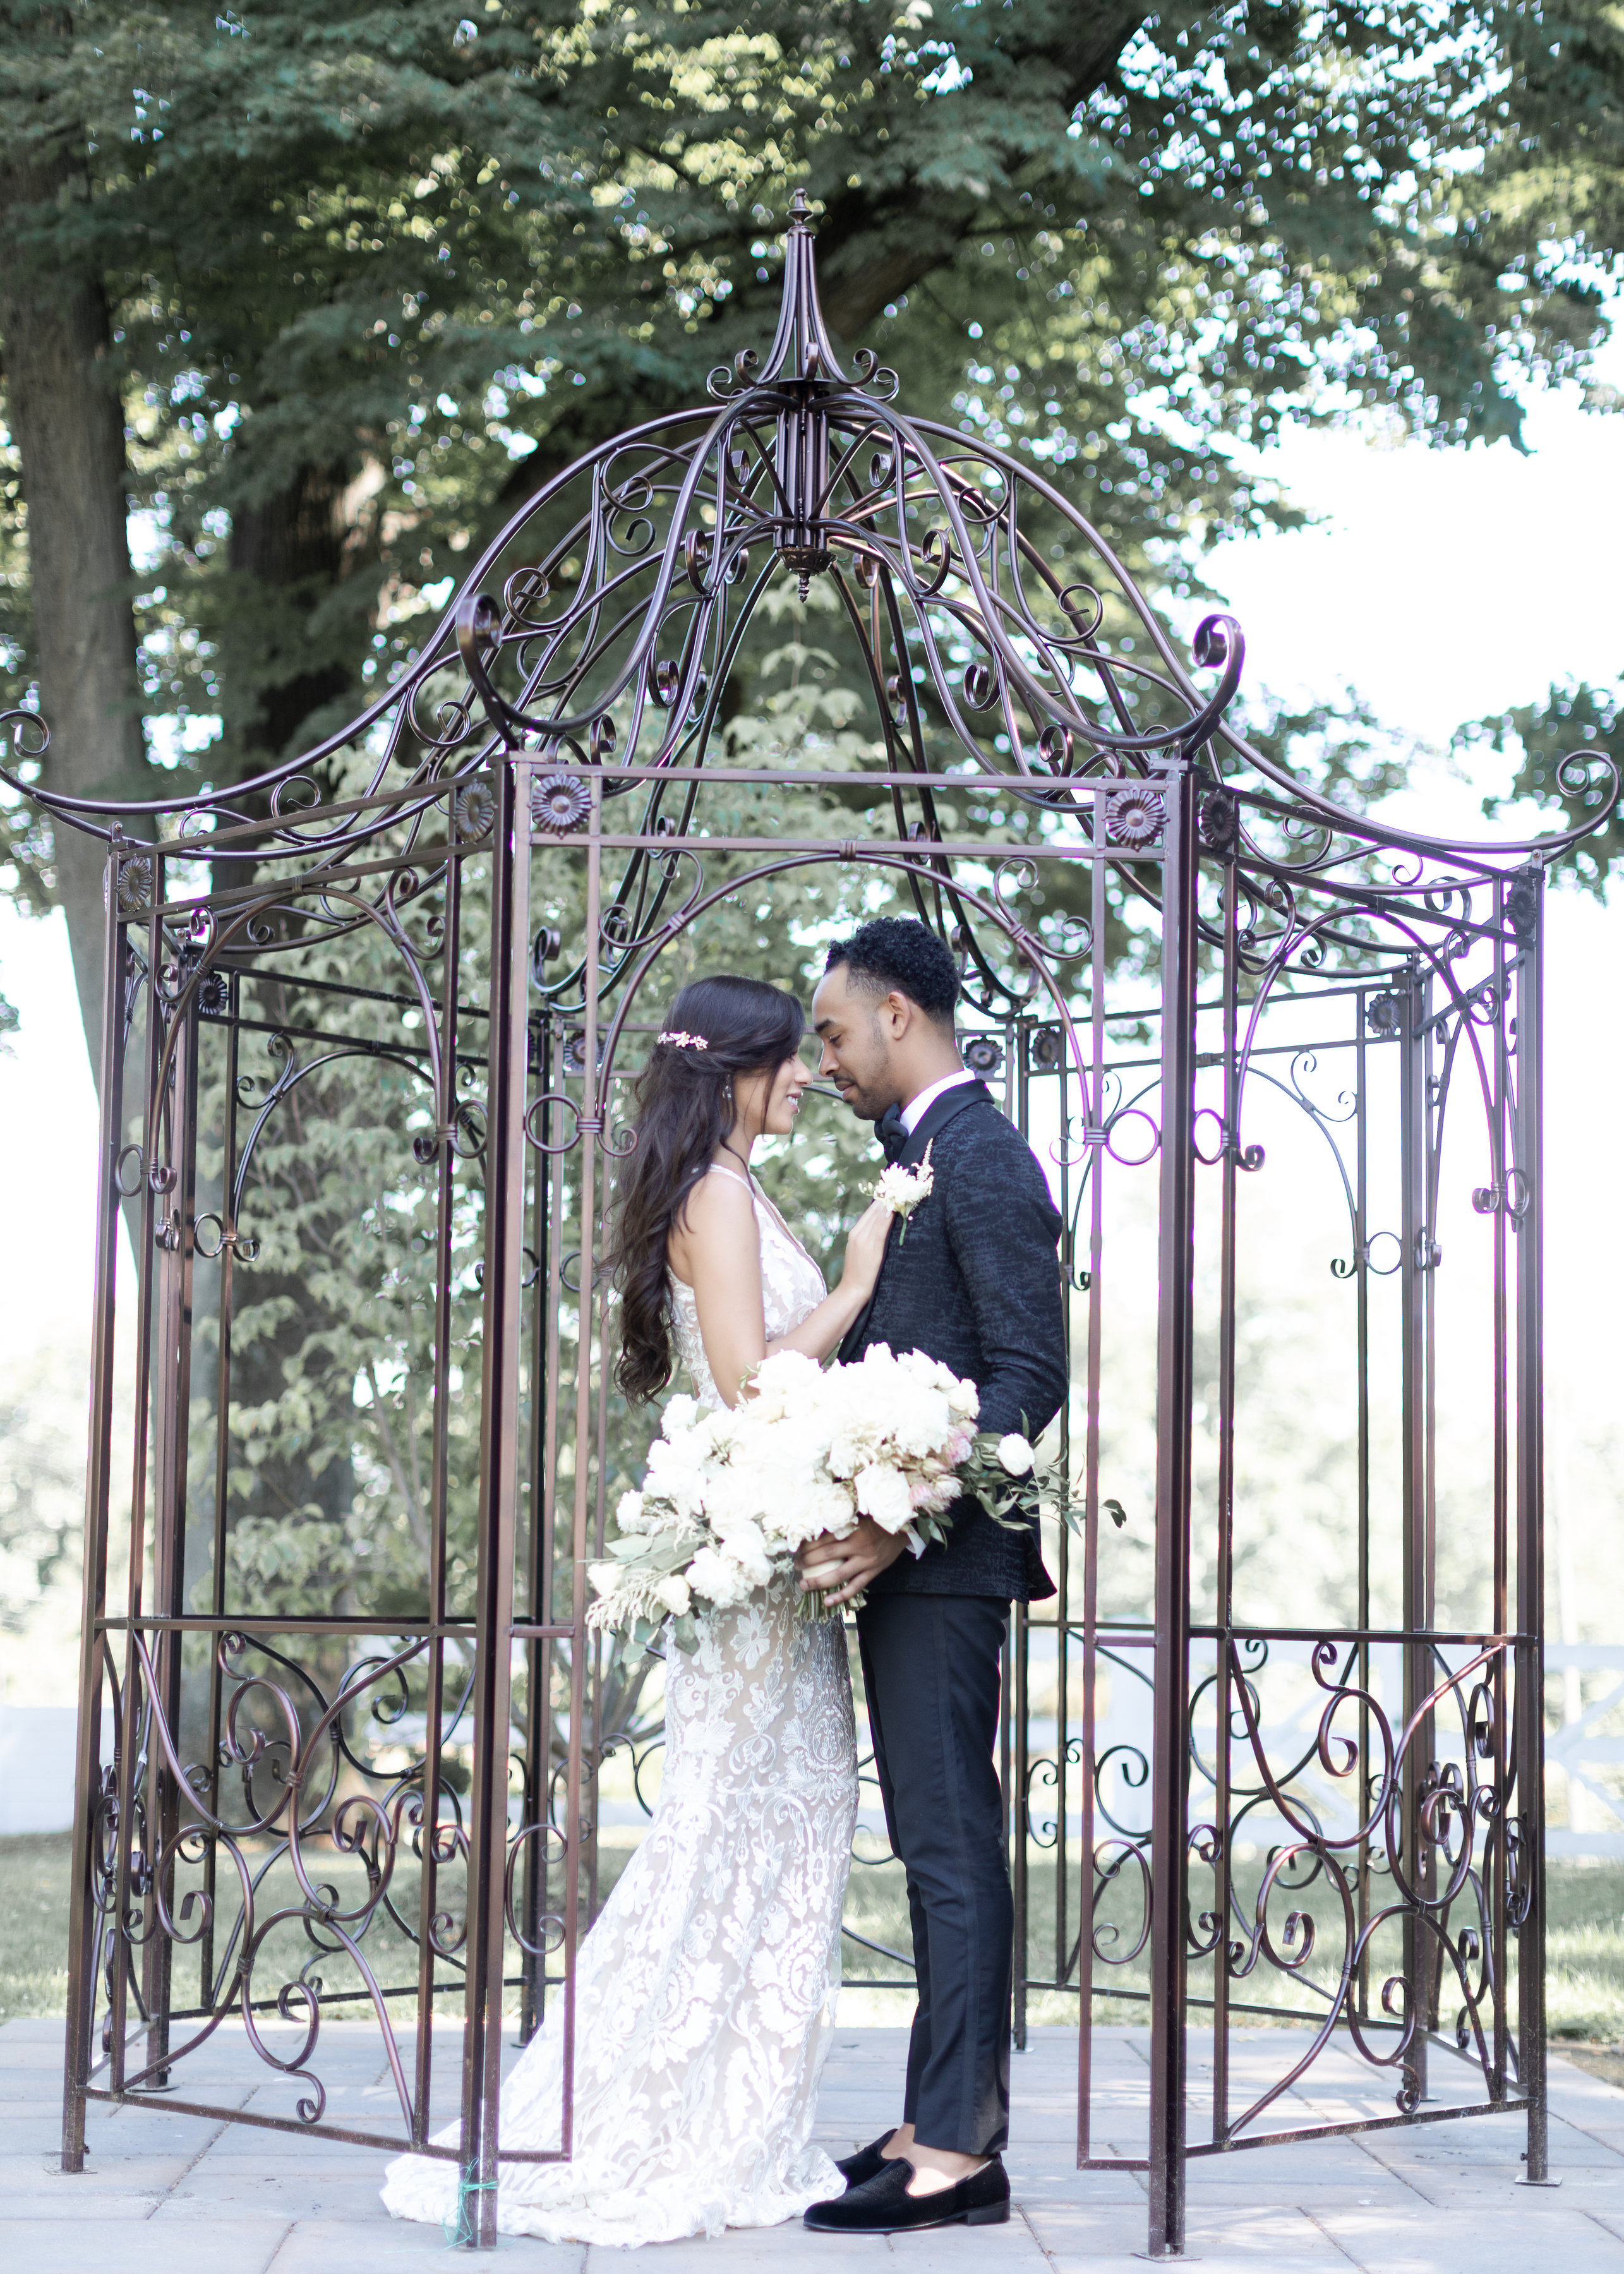 Jochy Campusano Photography, Wedding Planning & Design by Lifetime Events by Jacqueline for Destination Wedding network Adriana Weddings